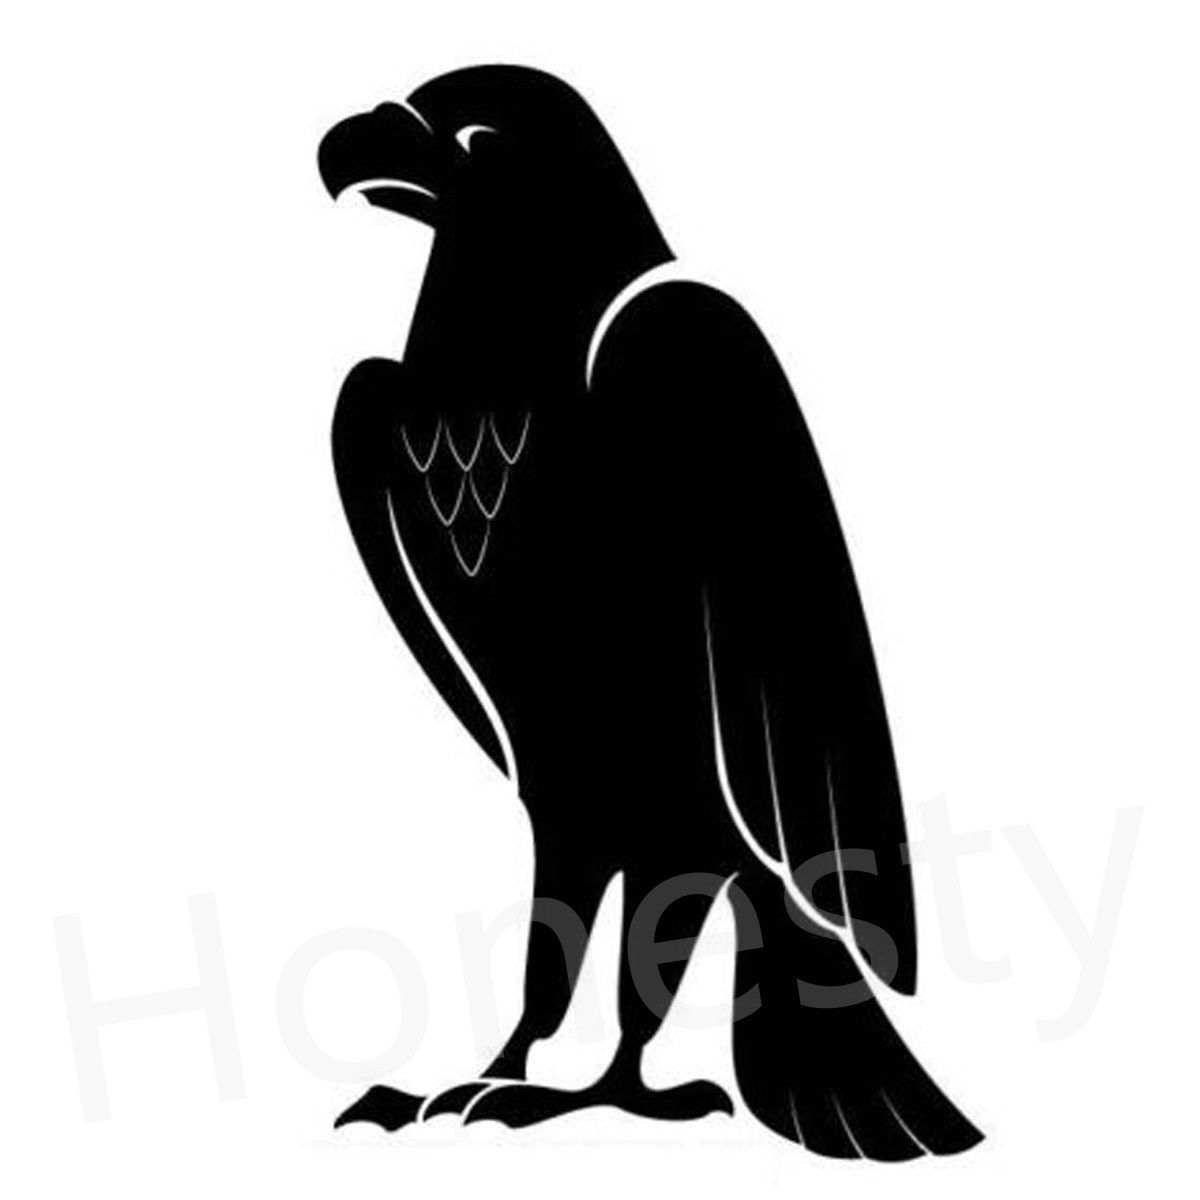 Eagle Standing Car Wall Home Glass Window Door Car Sticker Auto Laptop Truck Black Animal Vinyl Decal Sticker Decor Gift